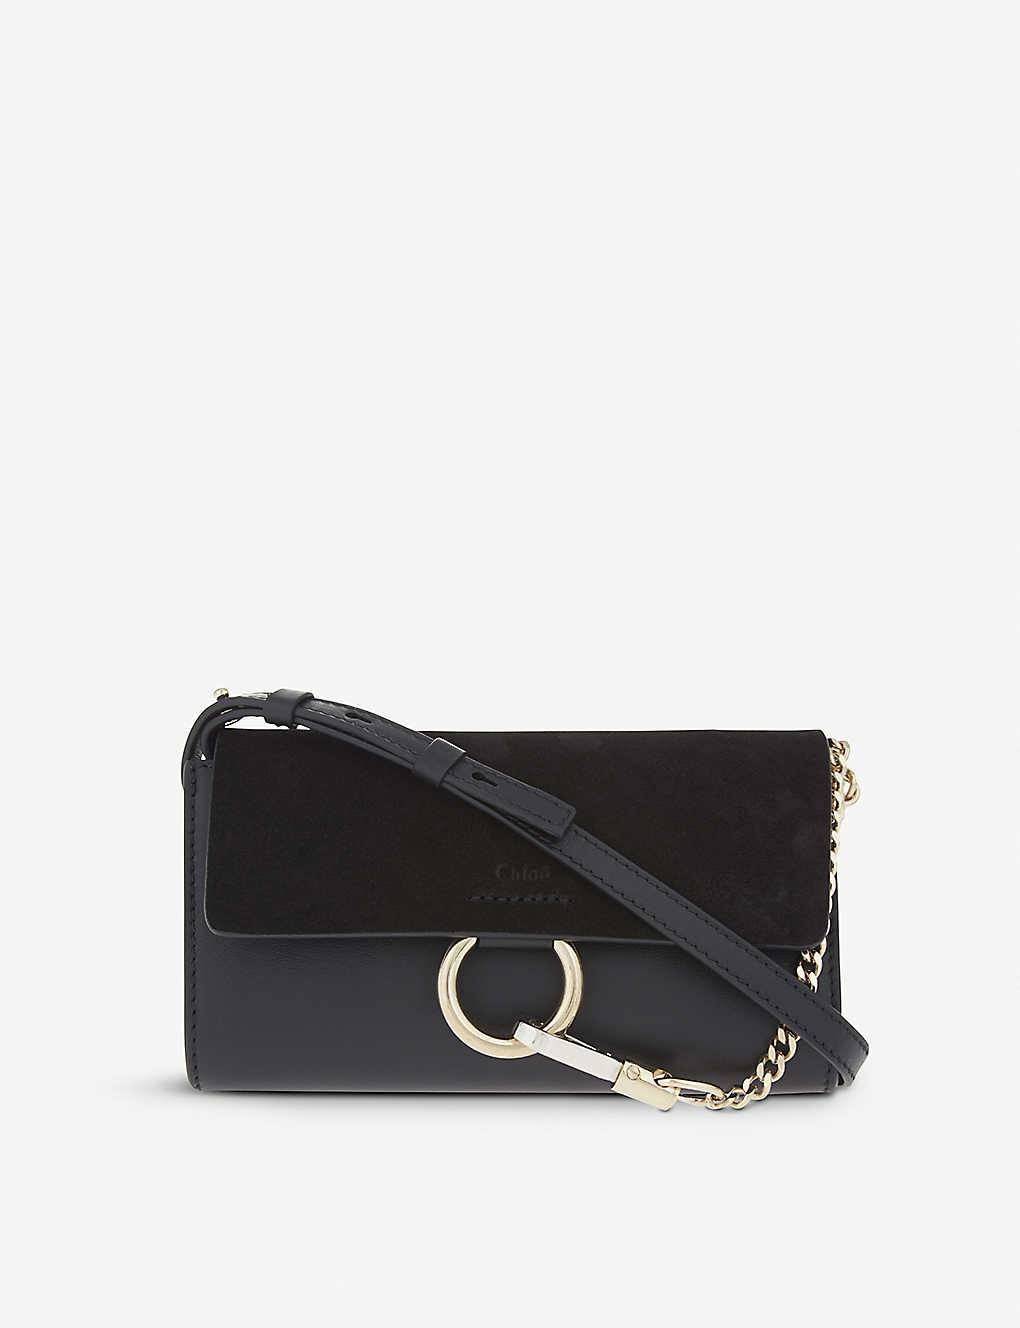 Chloé Clutch Faye leather and suede clutch